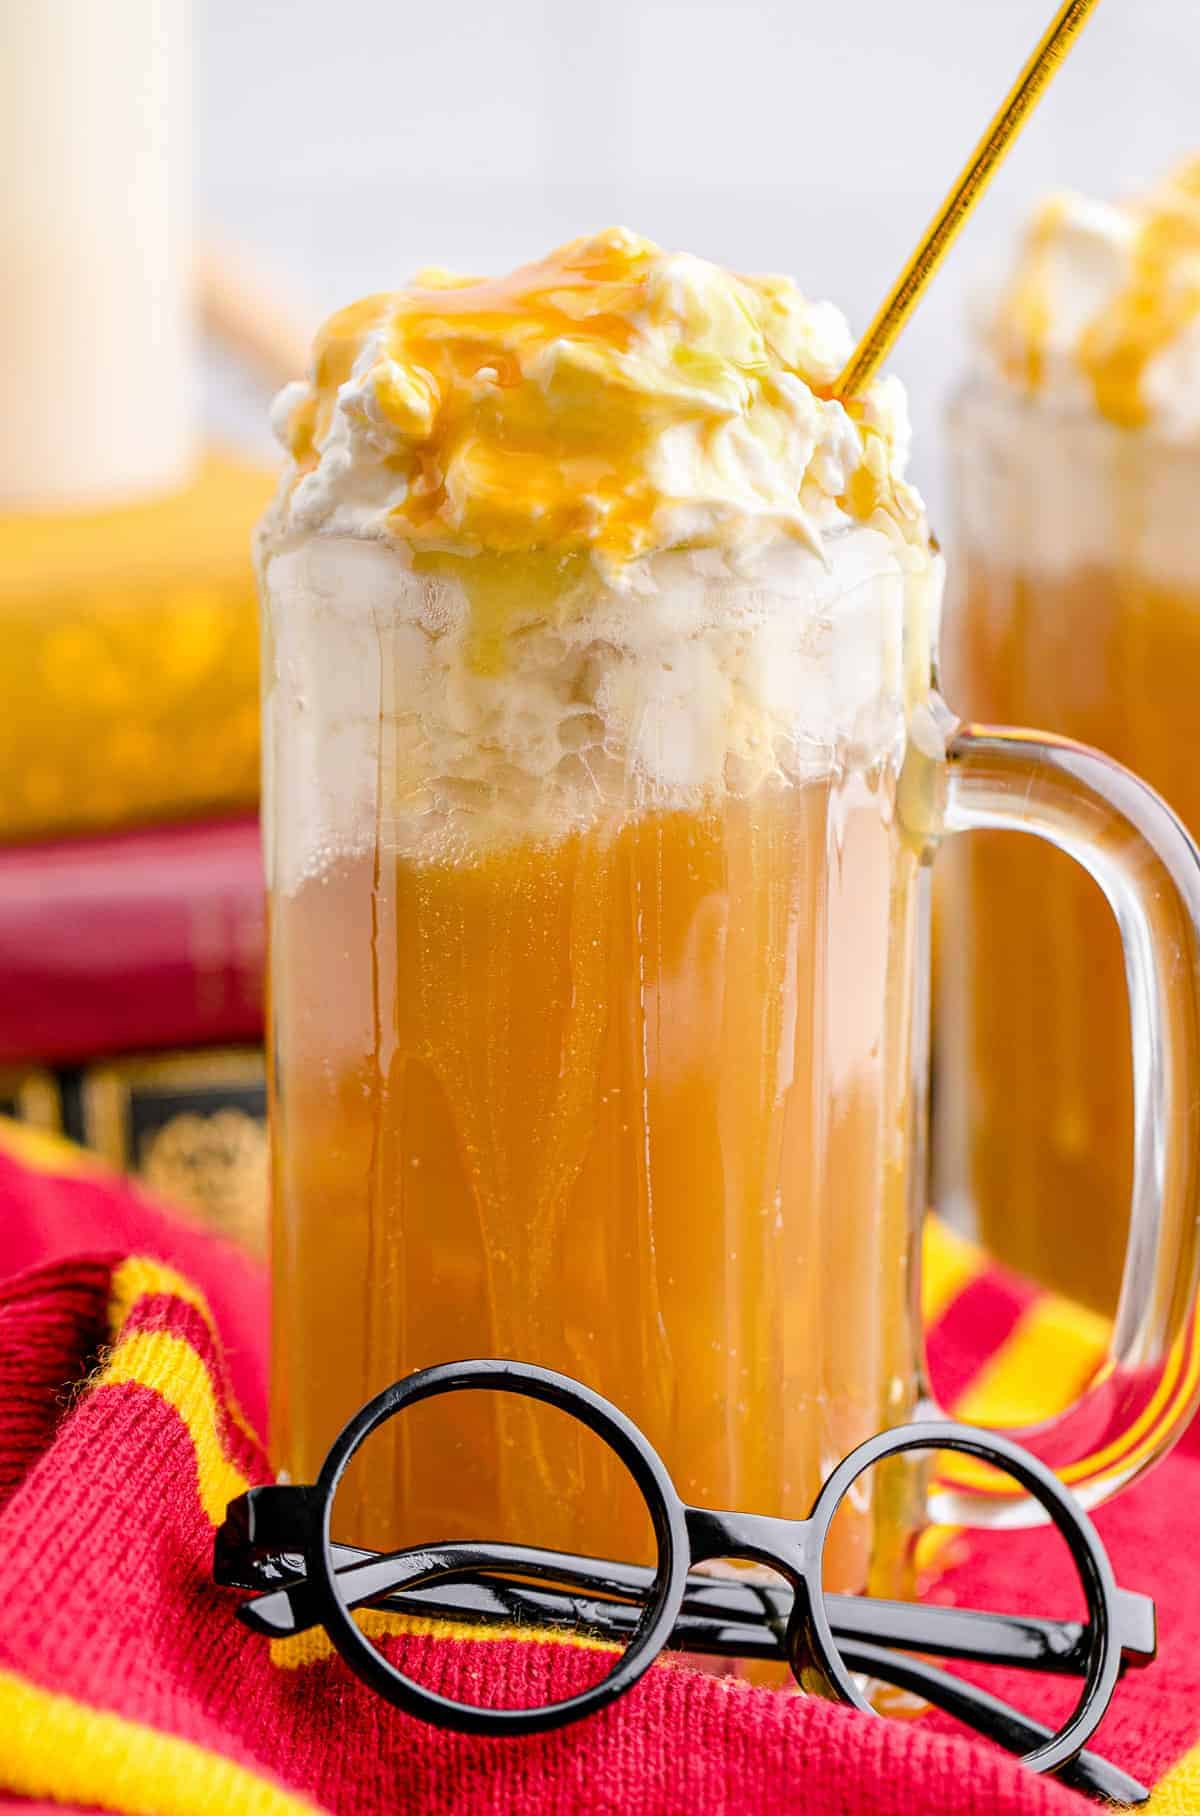 A glass mug of butterbeer with Harry Potter glasses in front of it.